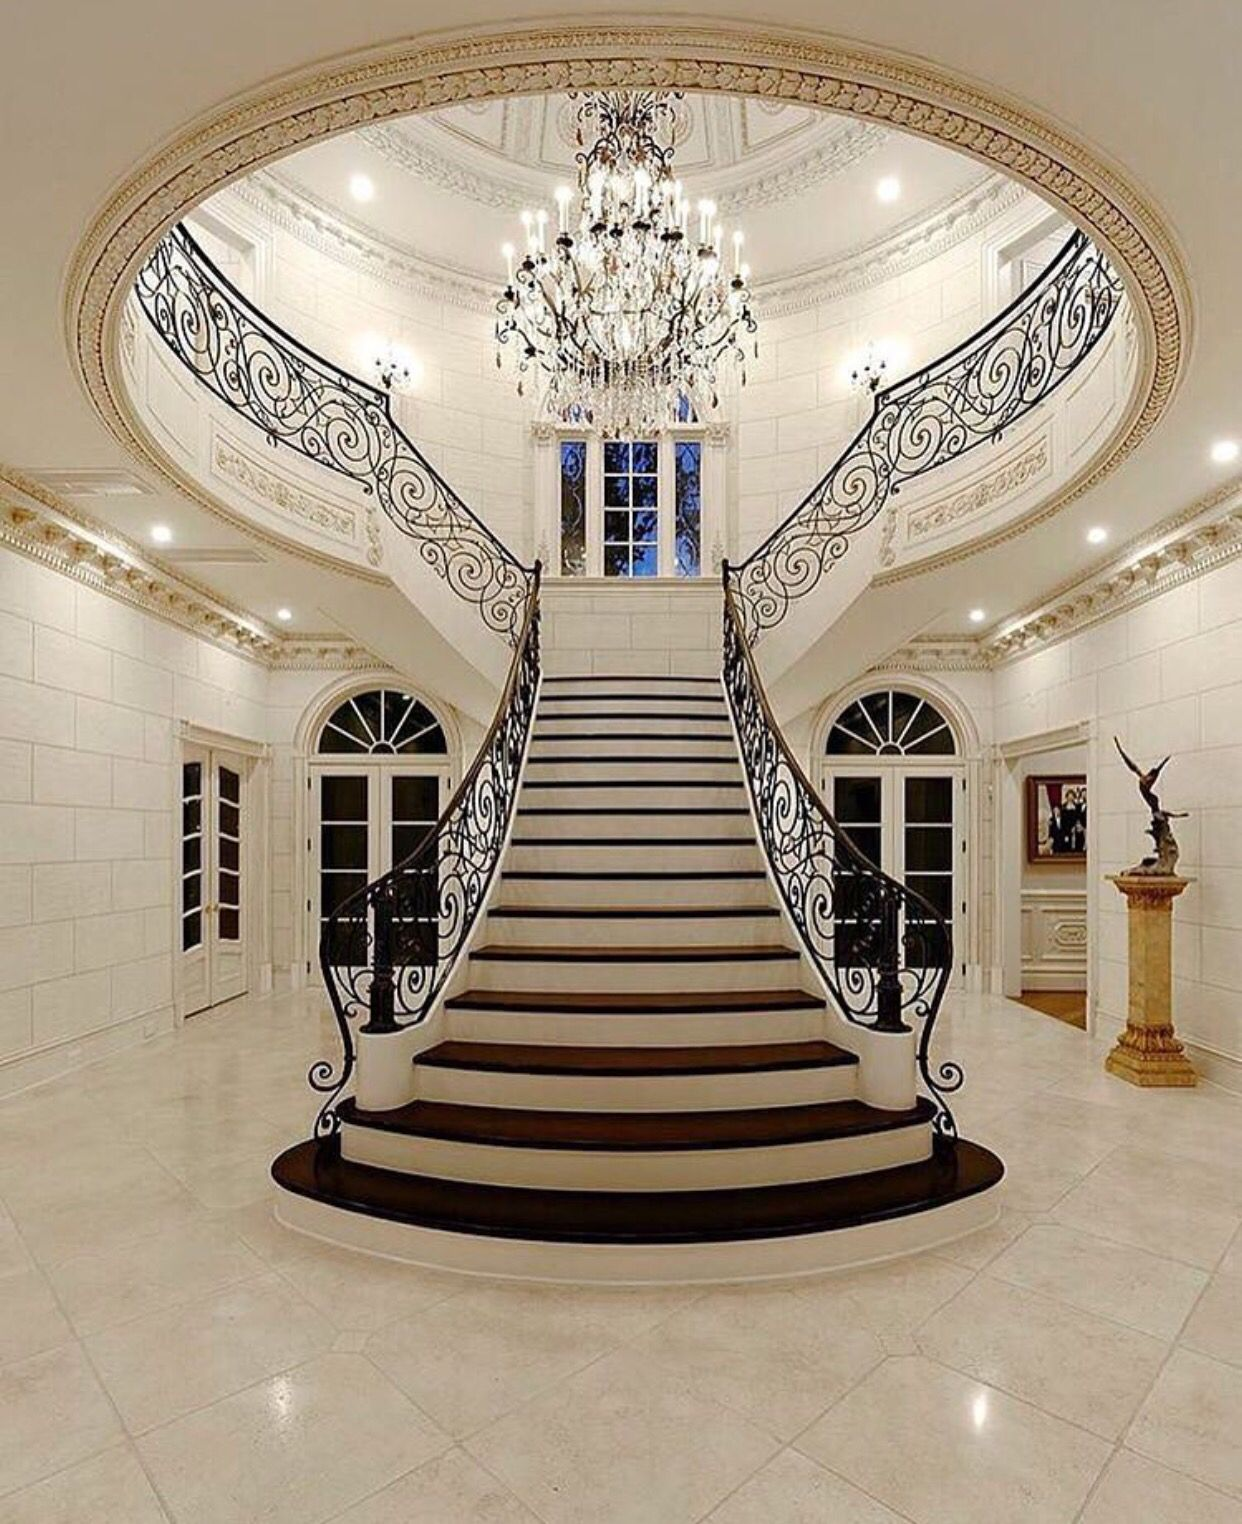 I Aspire To Have A Nice Expensive Home With A Grand